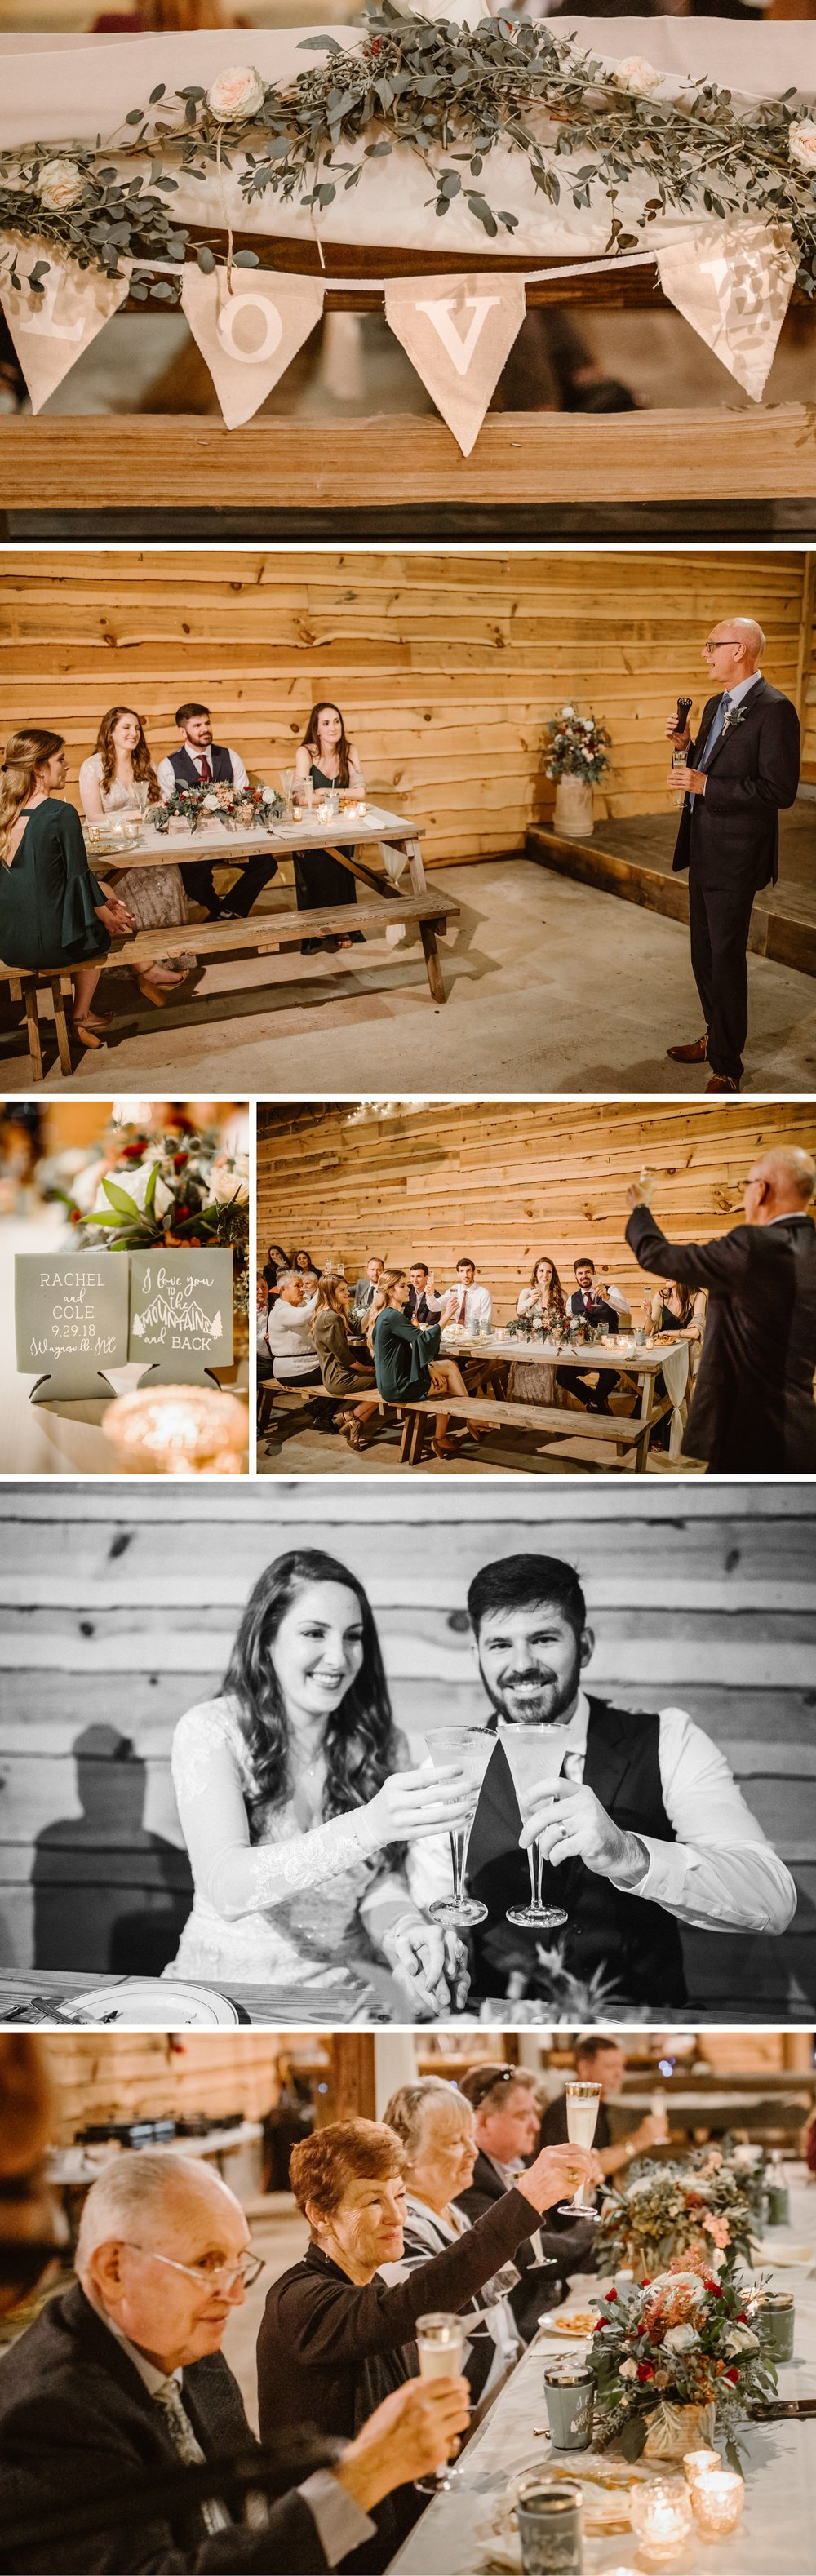 Asheville Mountain Barn Elopement Reception- Cole + Rachel- Shaina DeCiryan Photography6.jpg